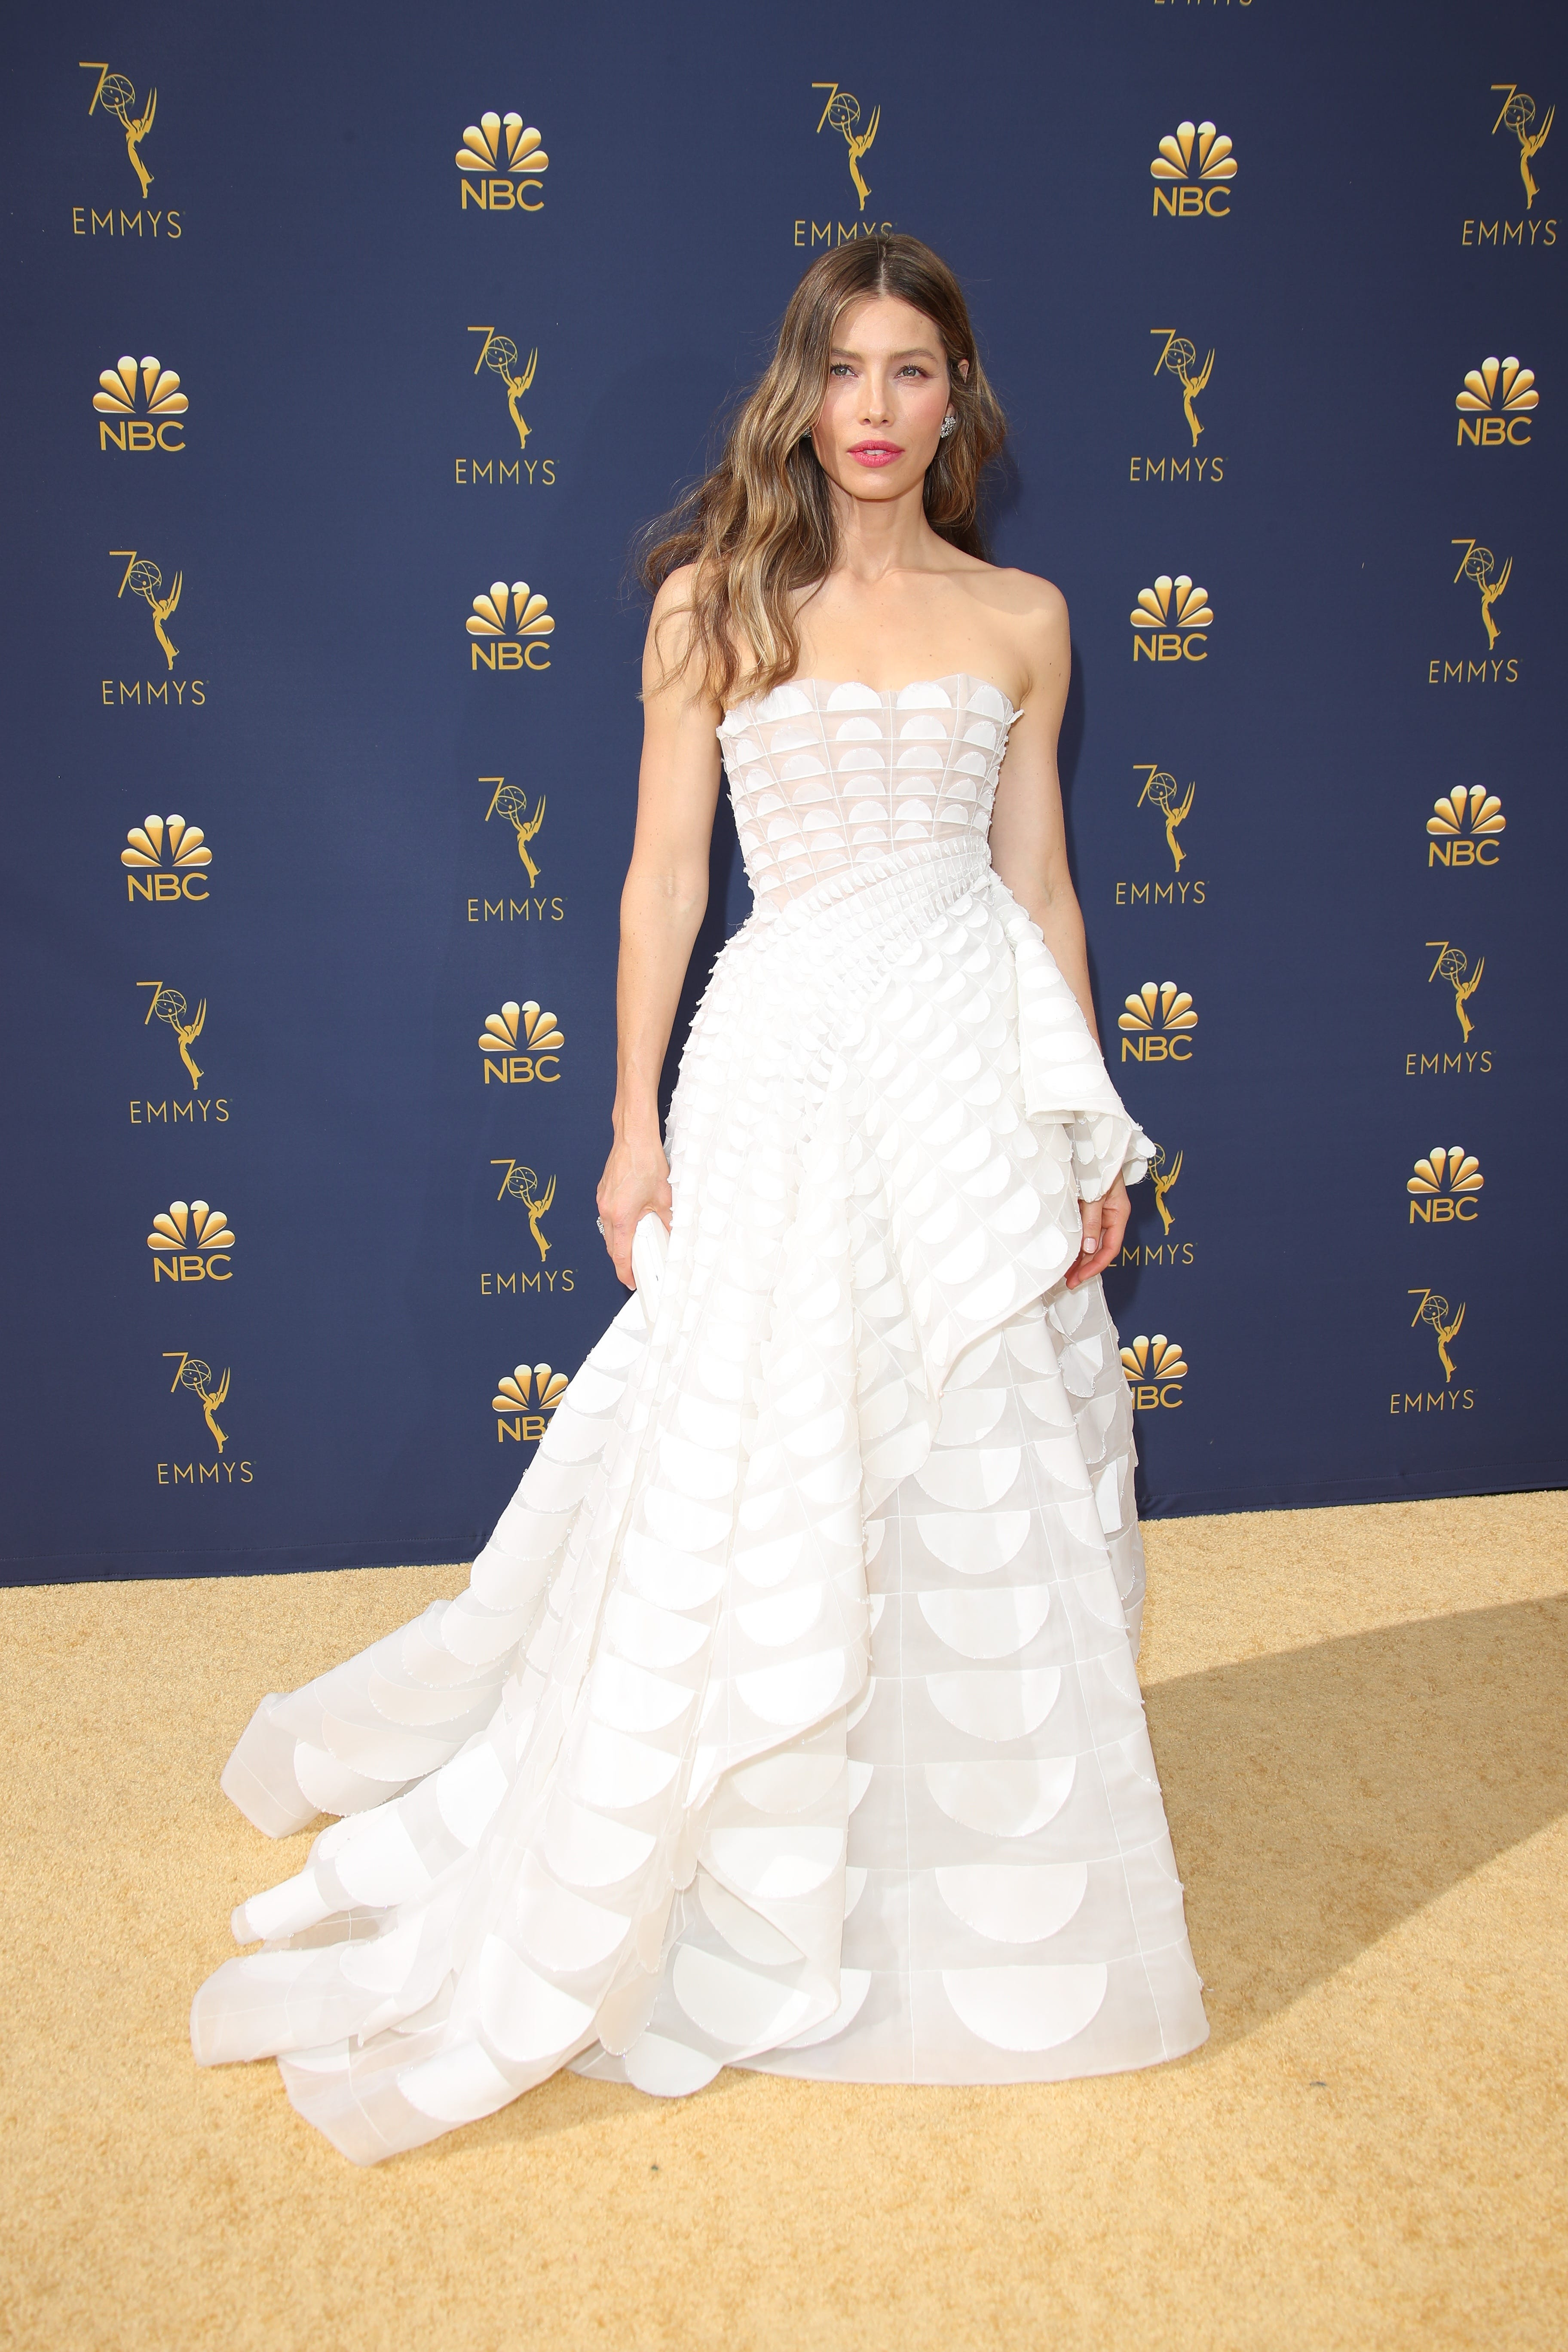 Jessica Biel, Kristen Bell and more best-dressed stars stun at the 2018 Emmys